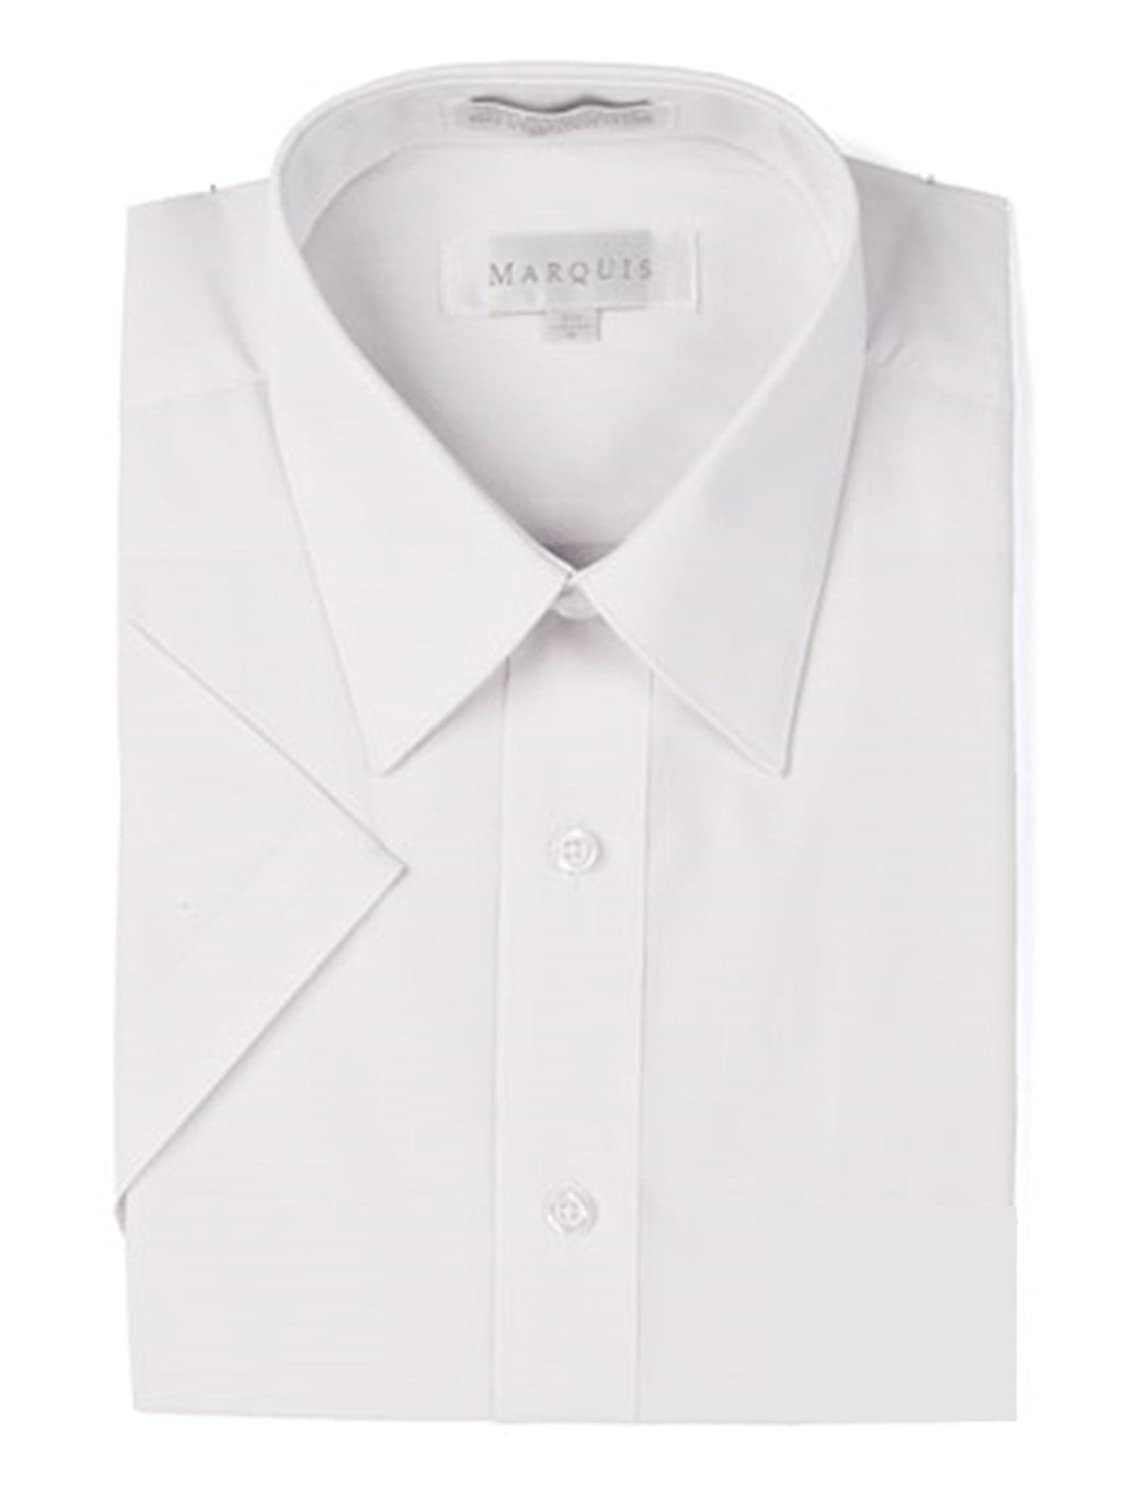 Marquis Mens Short Sleeve Slim Fit Solid Dress Shirt White At